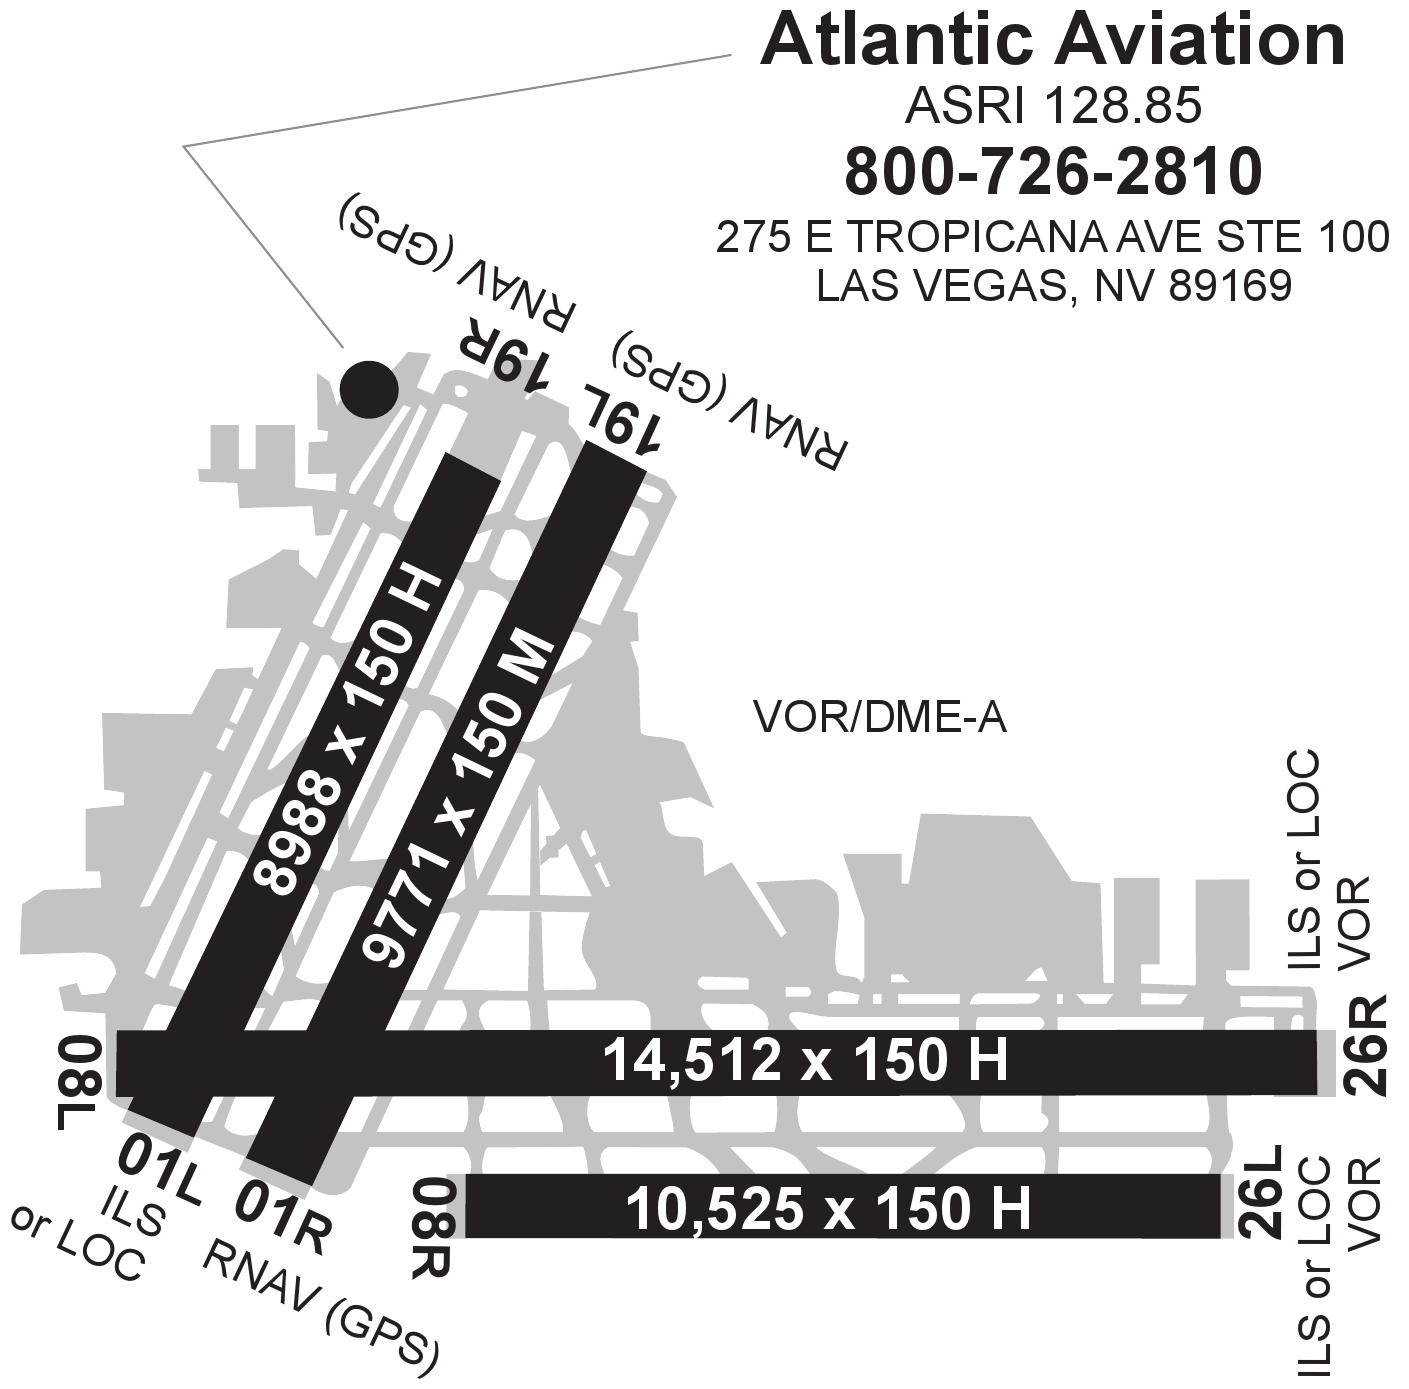 Atlantic Aviation